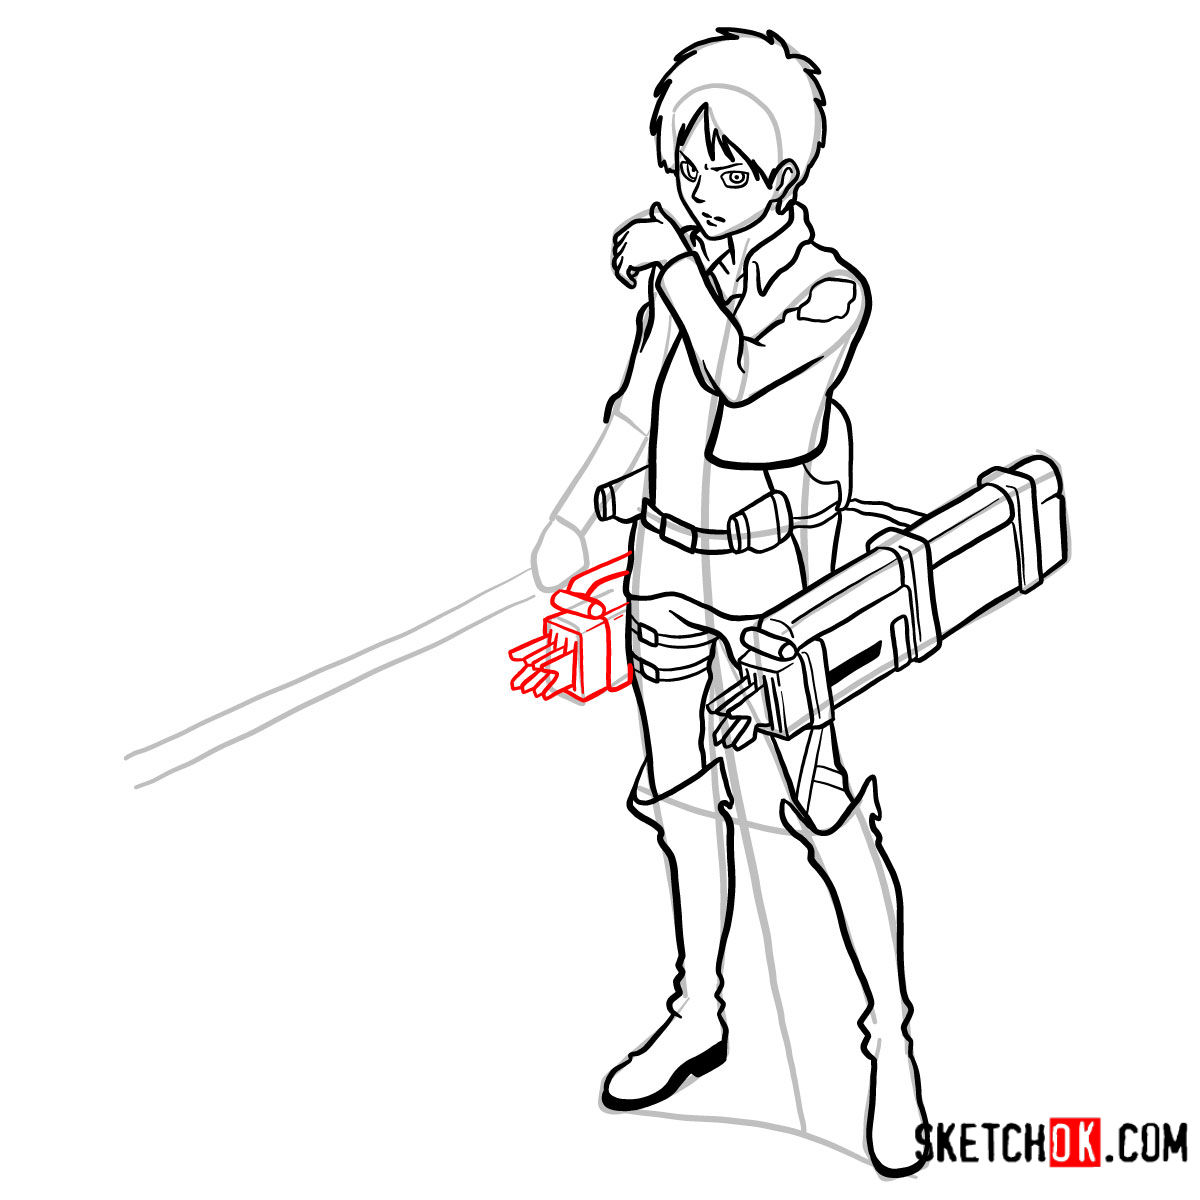 How to draw Eren Jaeger with his weapons | Attack on Titan - step 15